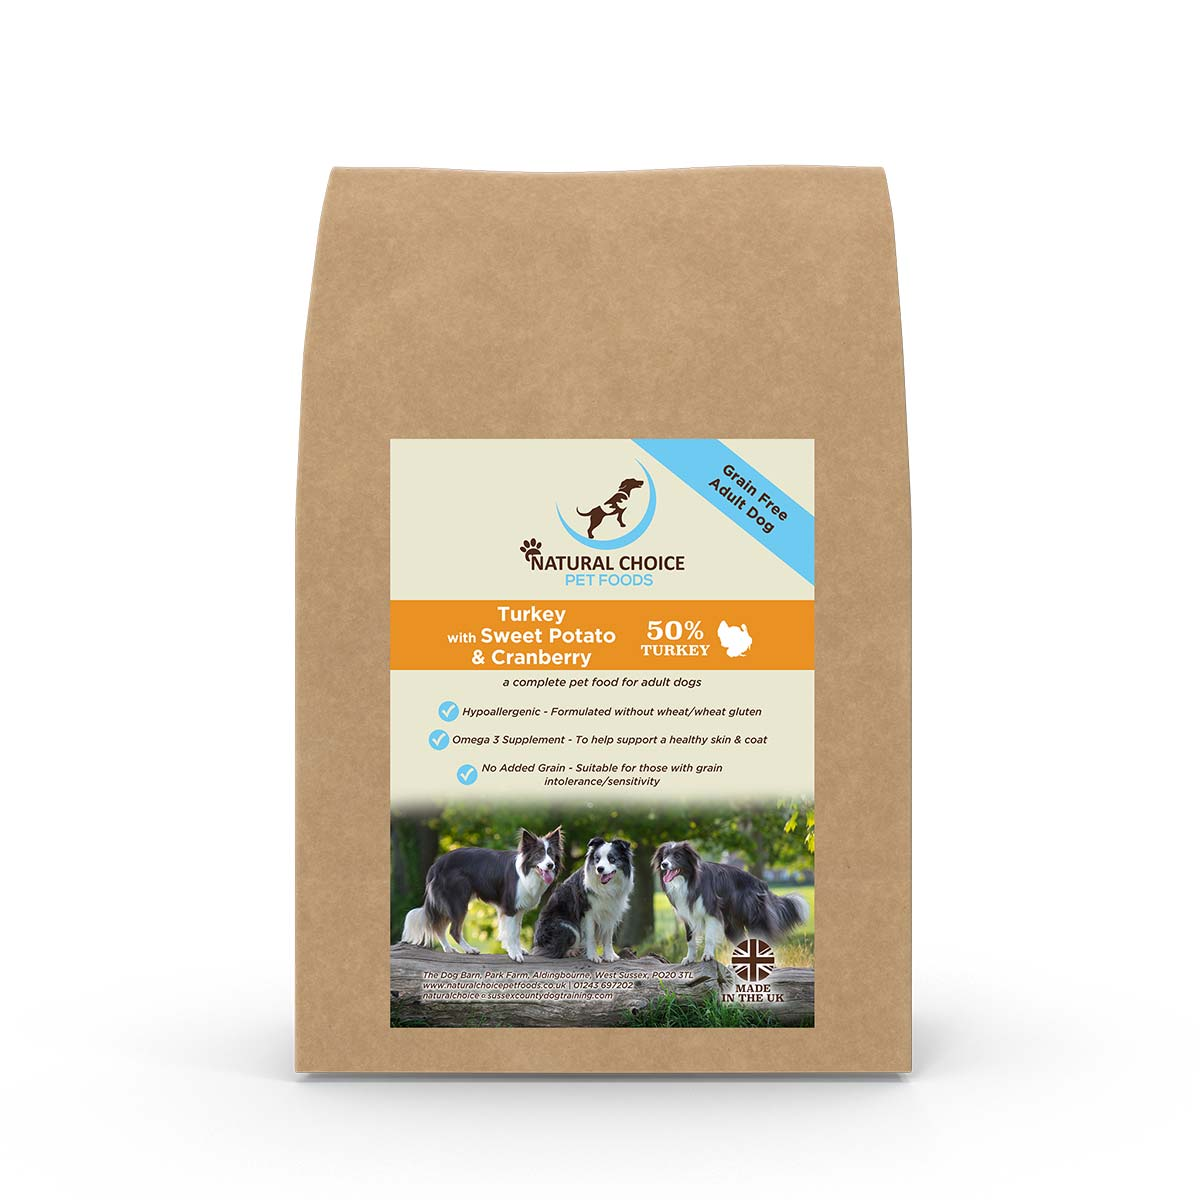 Natural Choice - Turkey, Sweet Potato & Cranberry - Grain Free Dry Dog Food